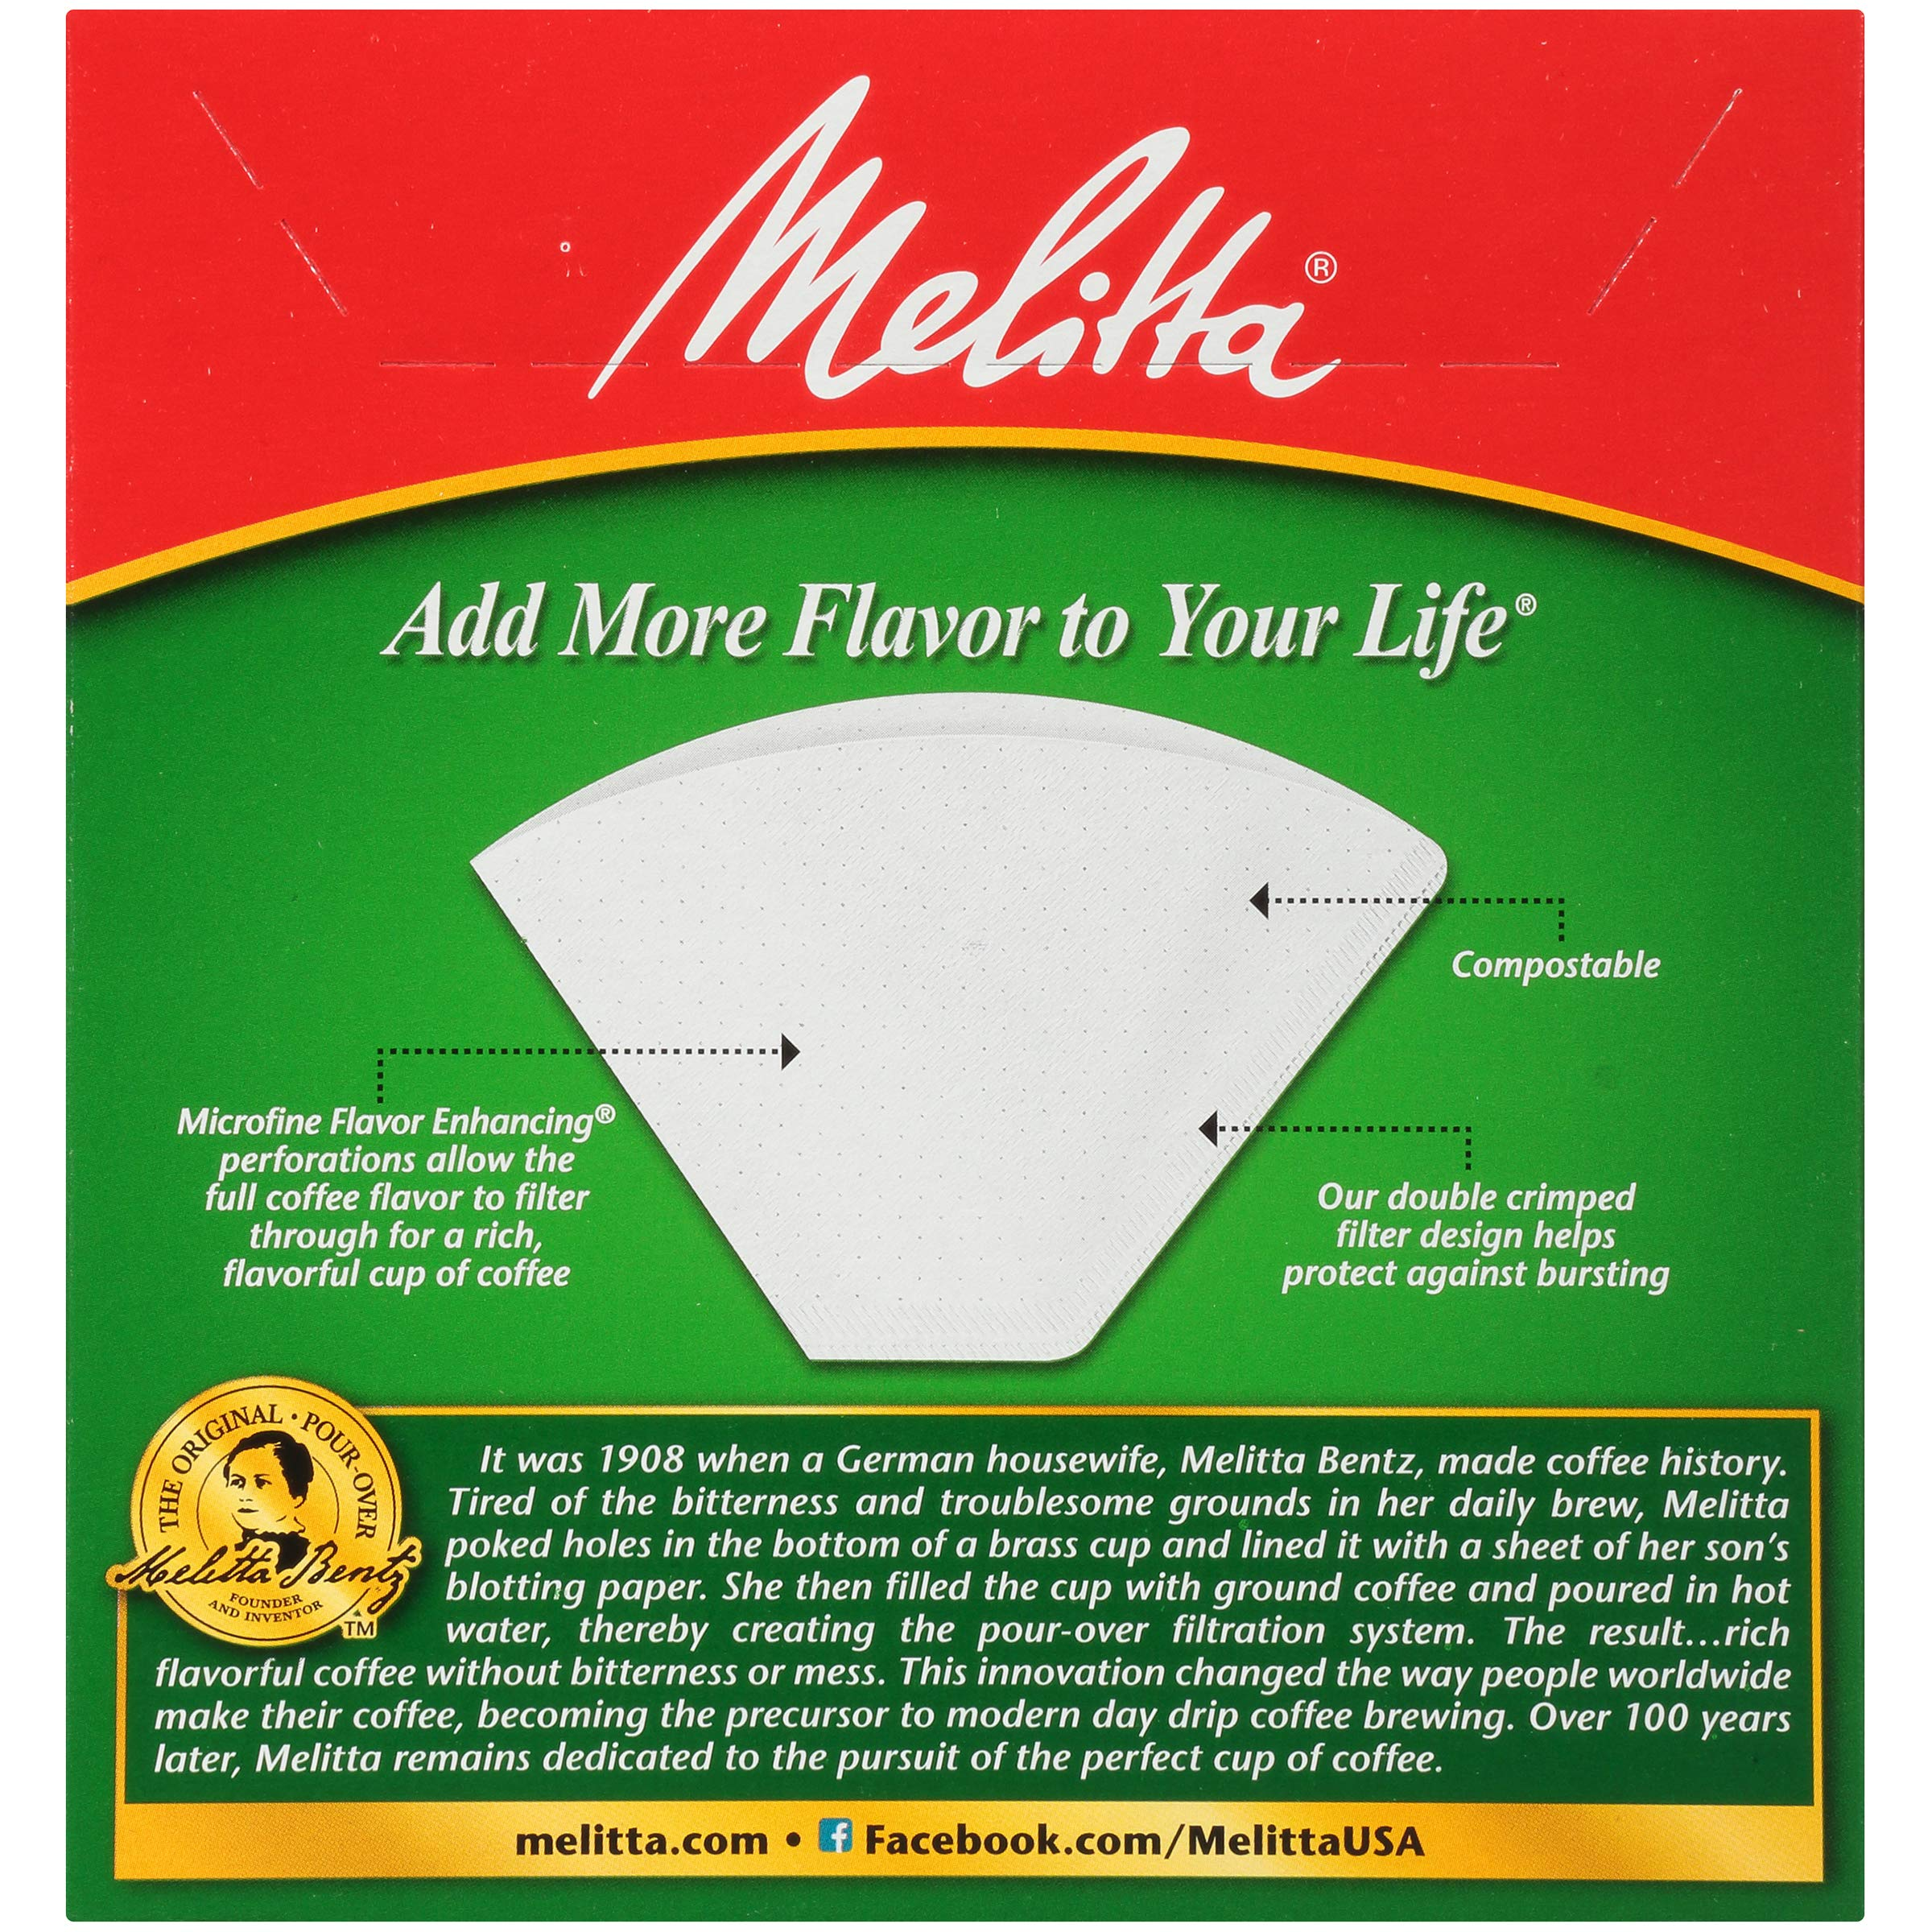 Melitta (624102C) #4 Super Premium Cone Coffee Filters, White, 100 Count (Pack of 12) Replacement Coffee Maker Filters by Melitta (Image #4)